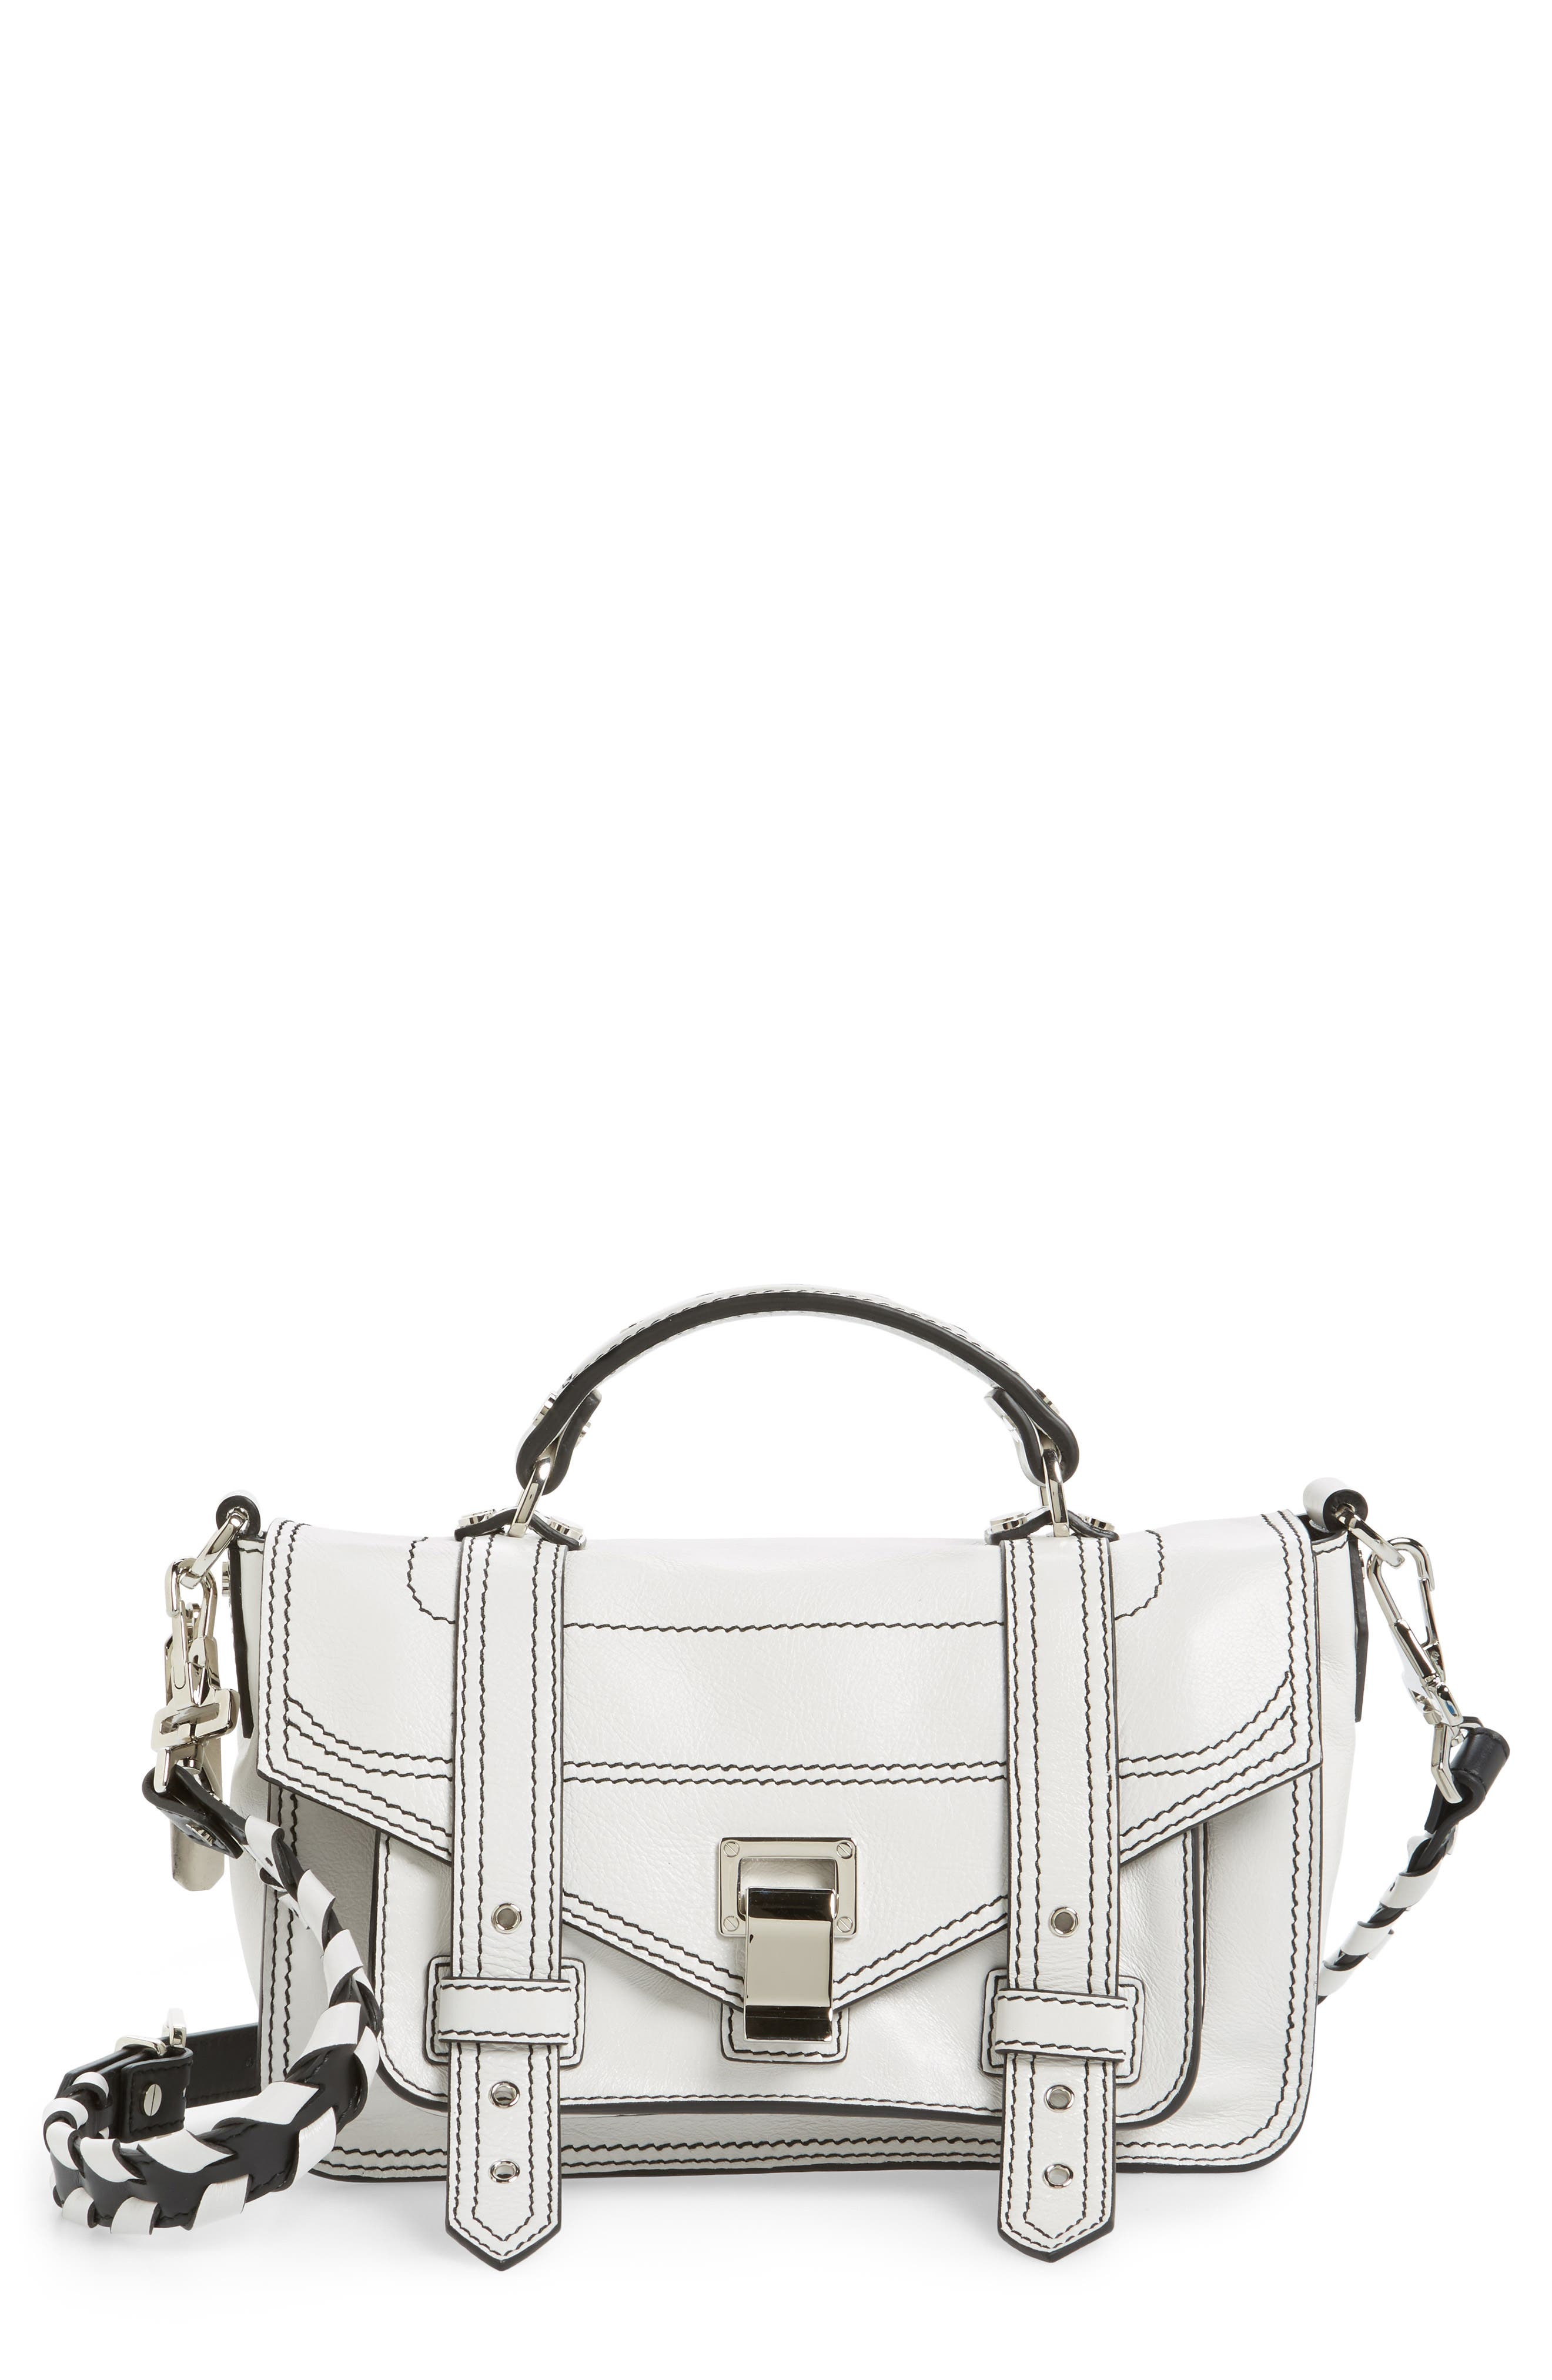 Tiny PS1 Calfskin Leather Satchel with Novelty Shoulder/Crossbody Strap,                             Main thumbnail 1, color,                             Optic White